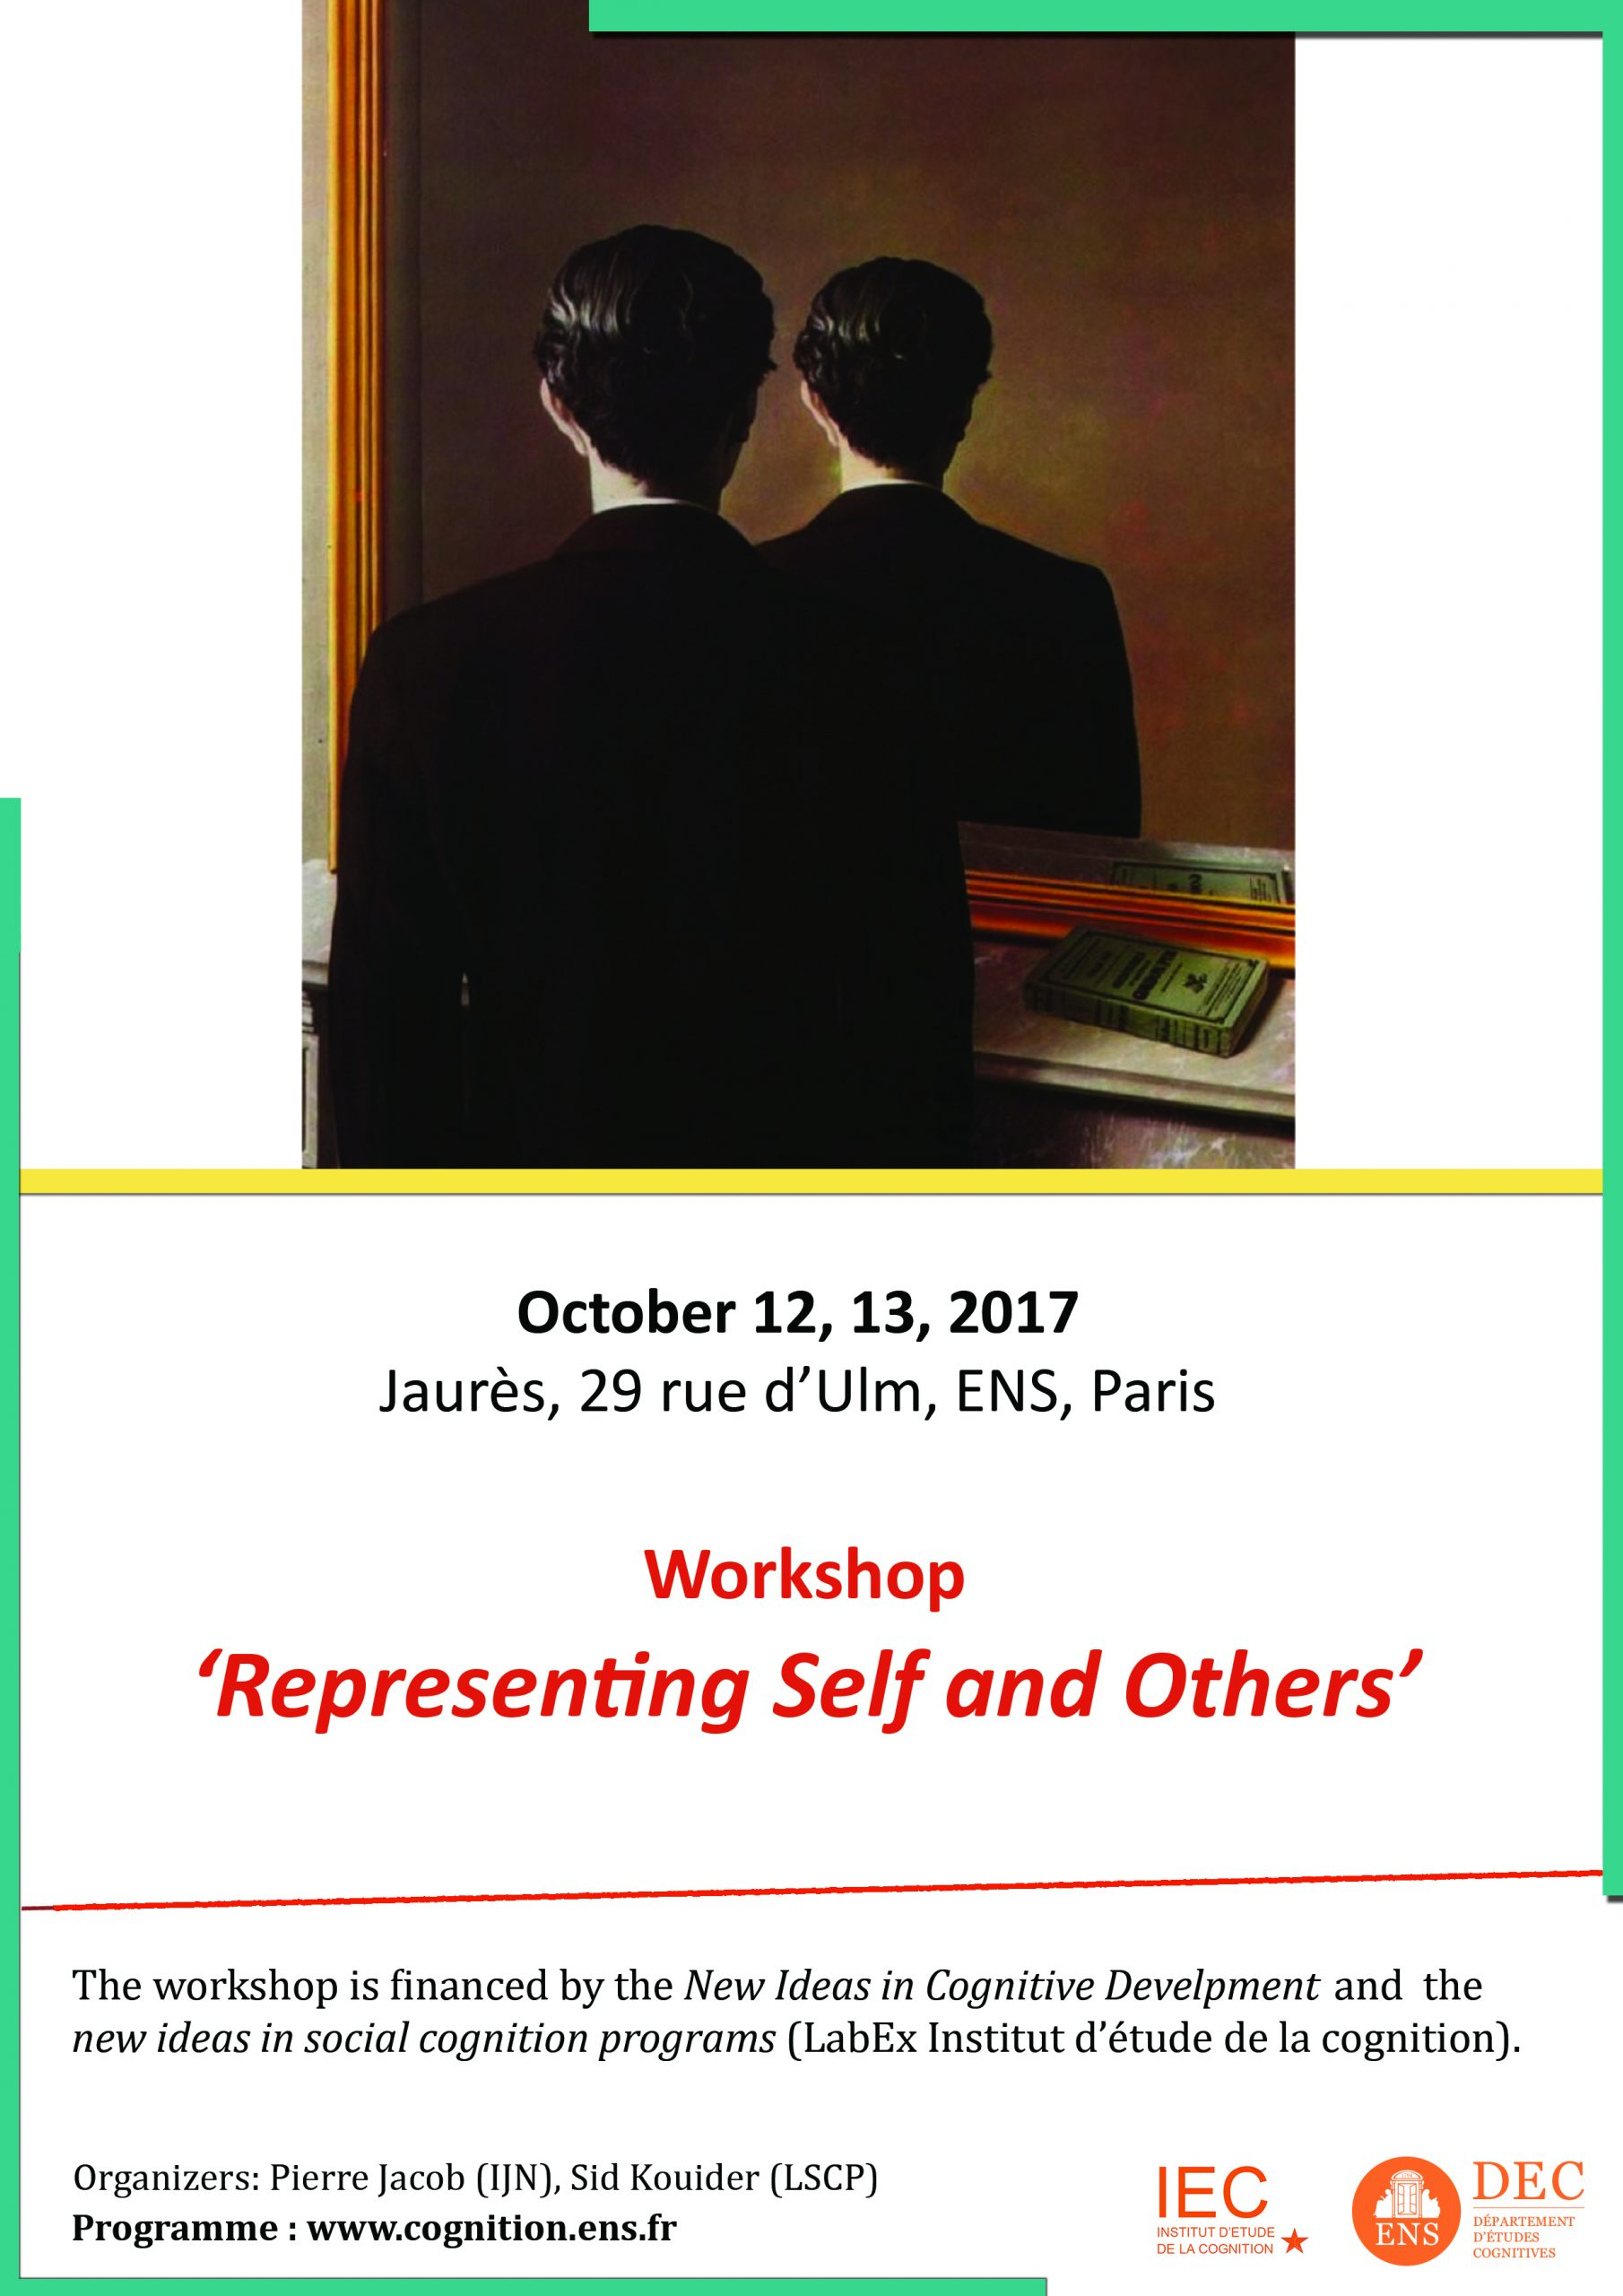 Calendar: Workshop - Representing Self And Others | Dec encequiconcerne Puzzle Departement